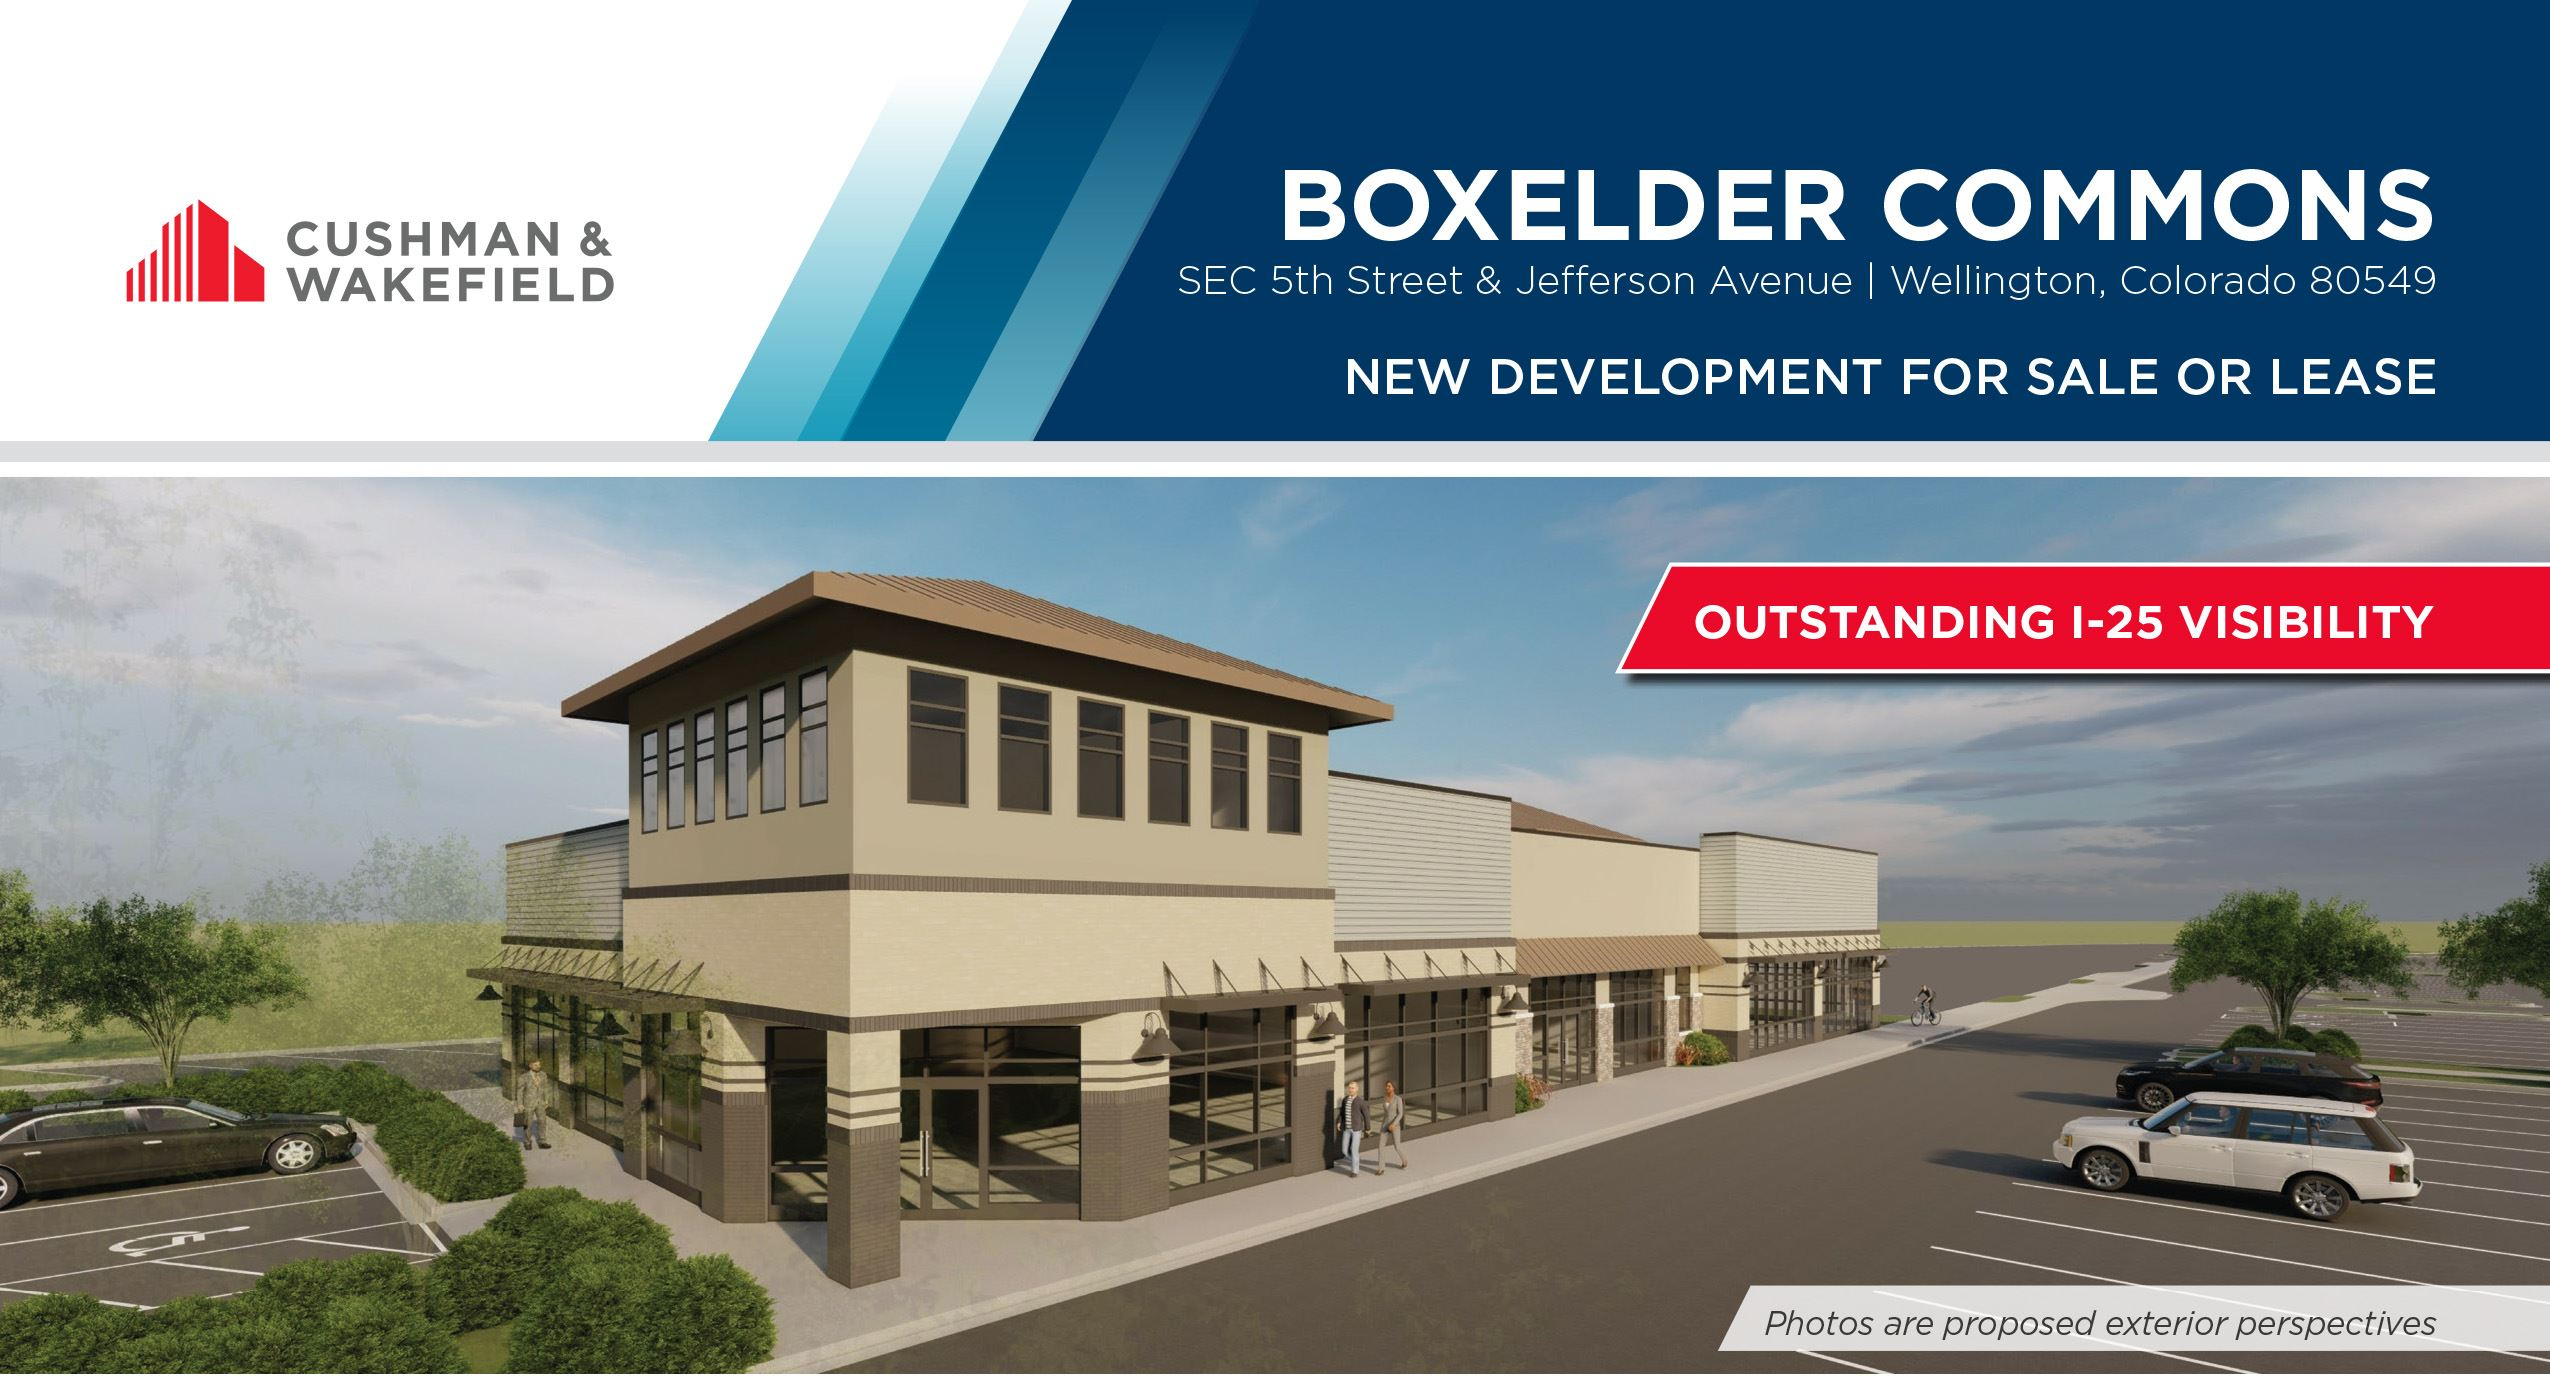 Boxelder Commons